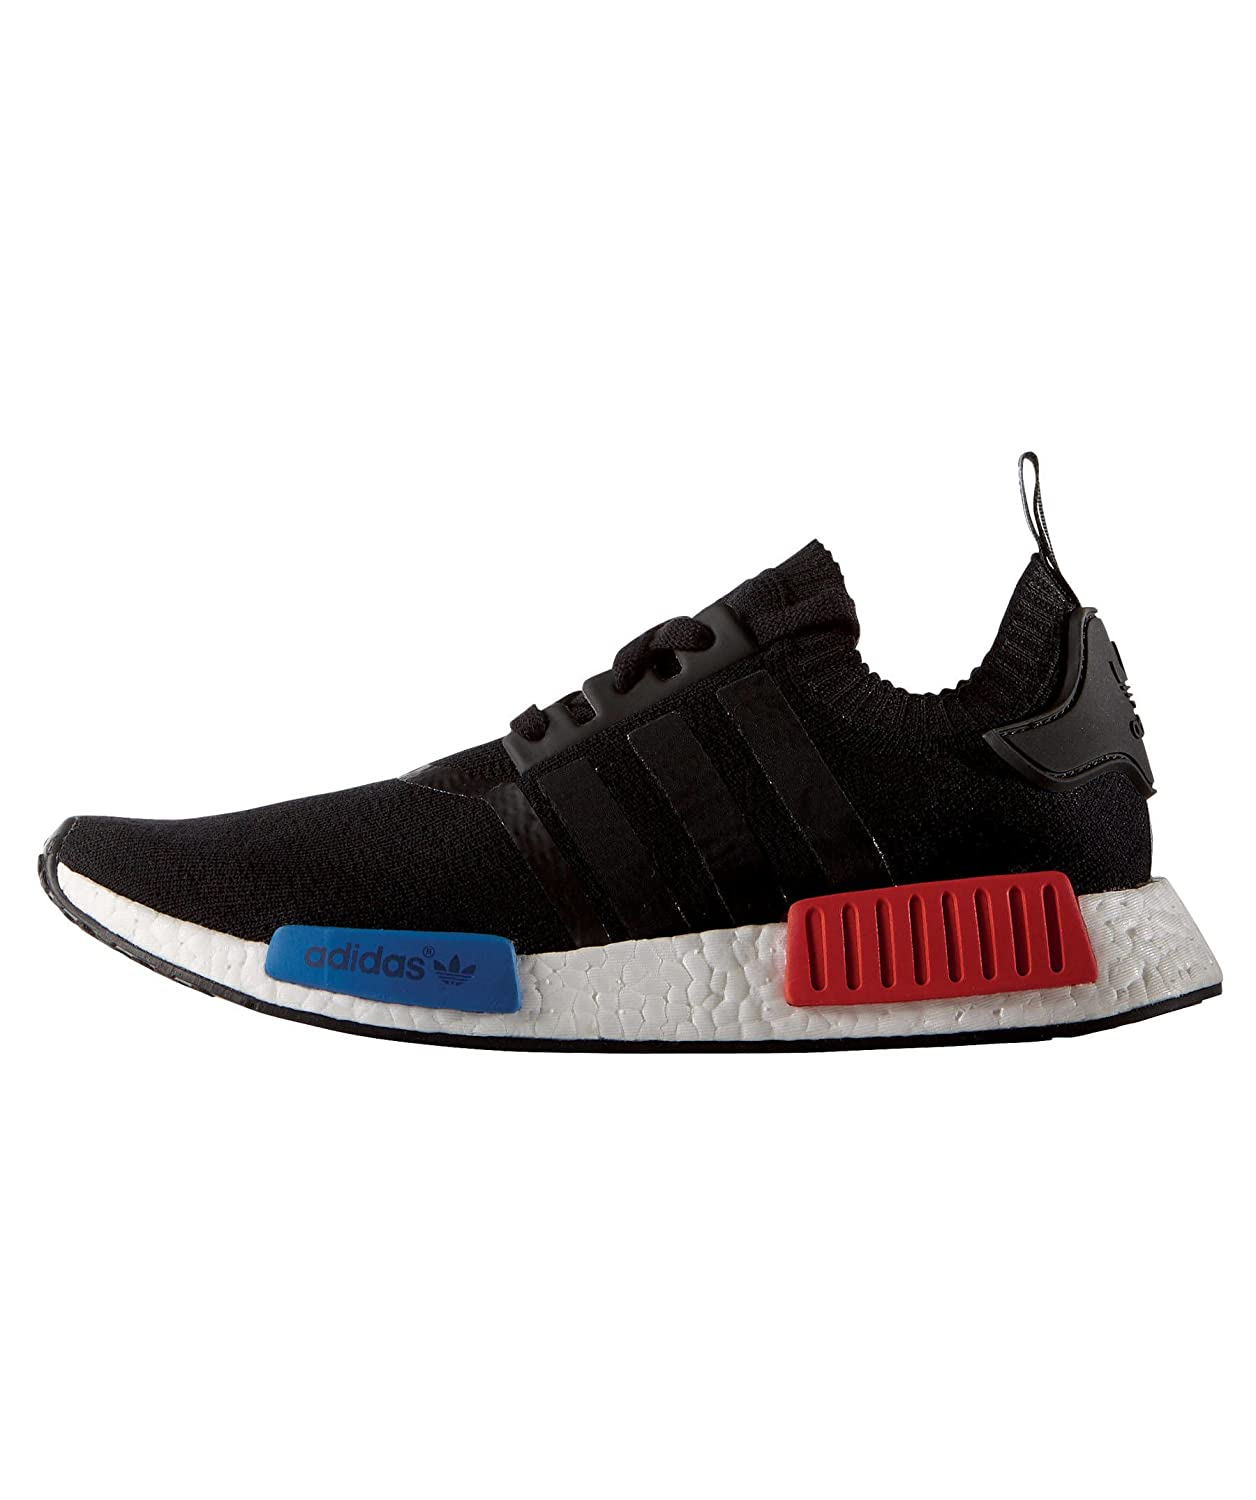 ba0d38517f906 ... coupon code for amazon adidas nmd runner pk og 2017 s79168 black white red  blue 12.5